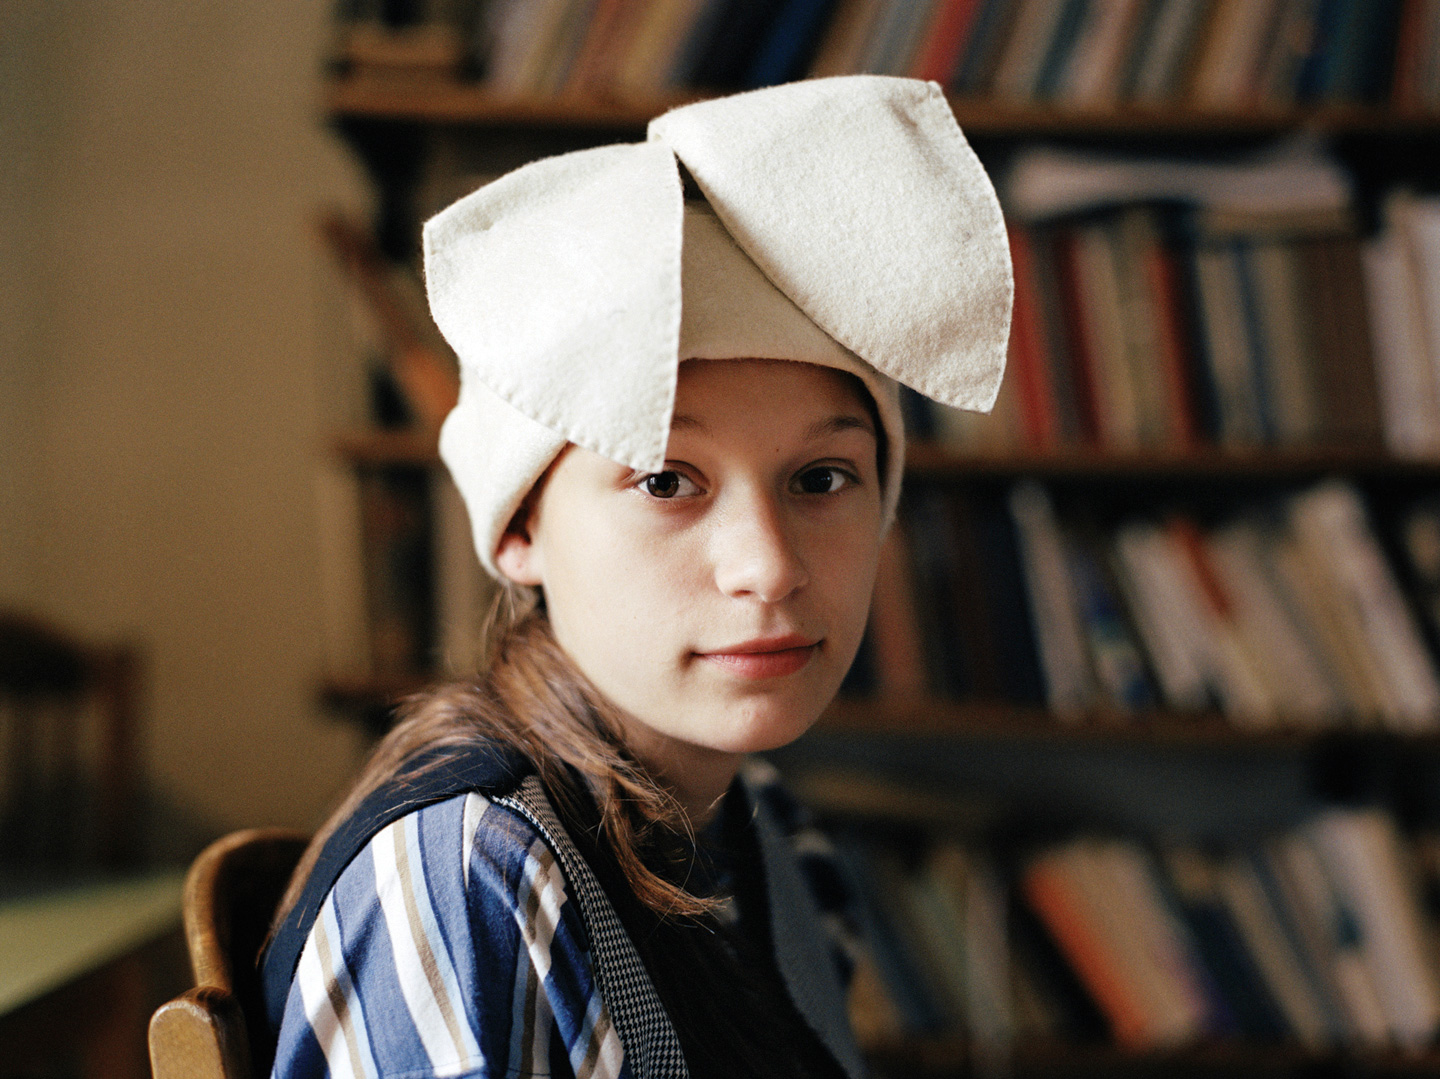 Zsuzsa P in Rabbit Ears, 2004